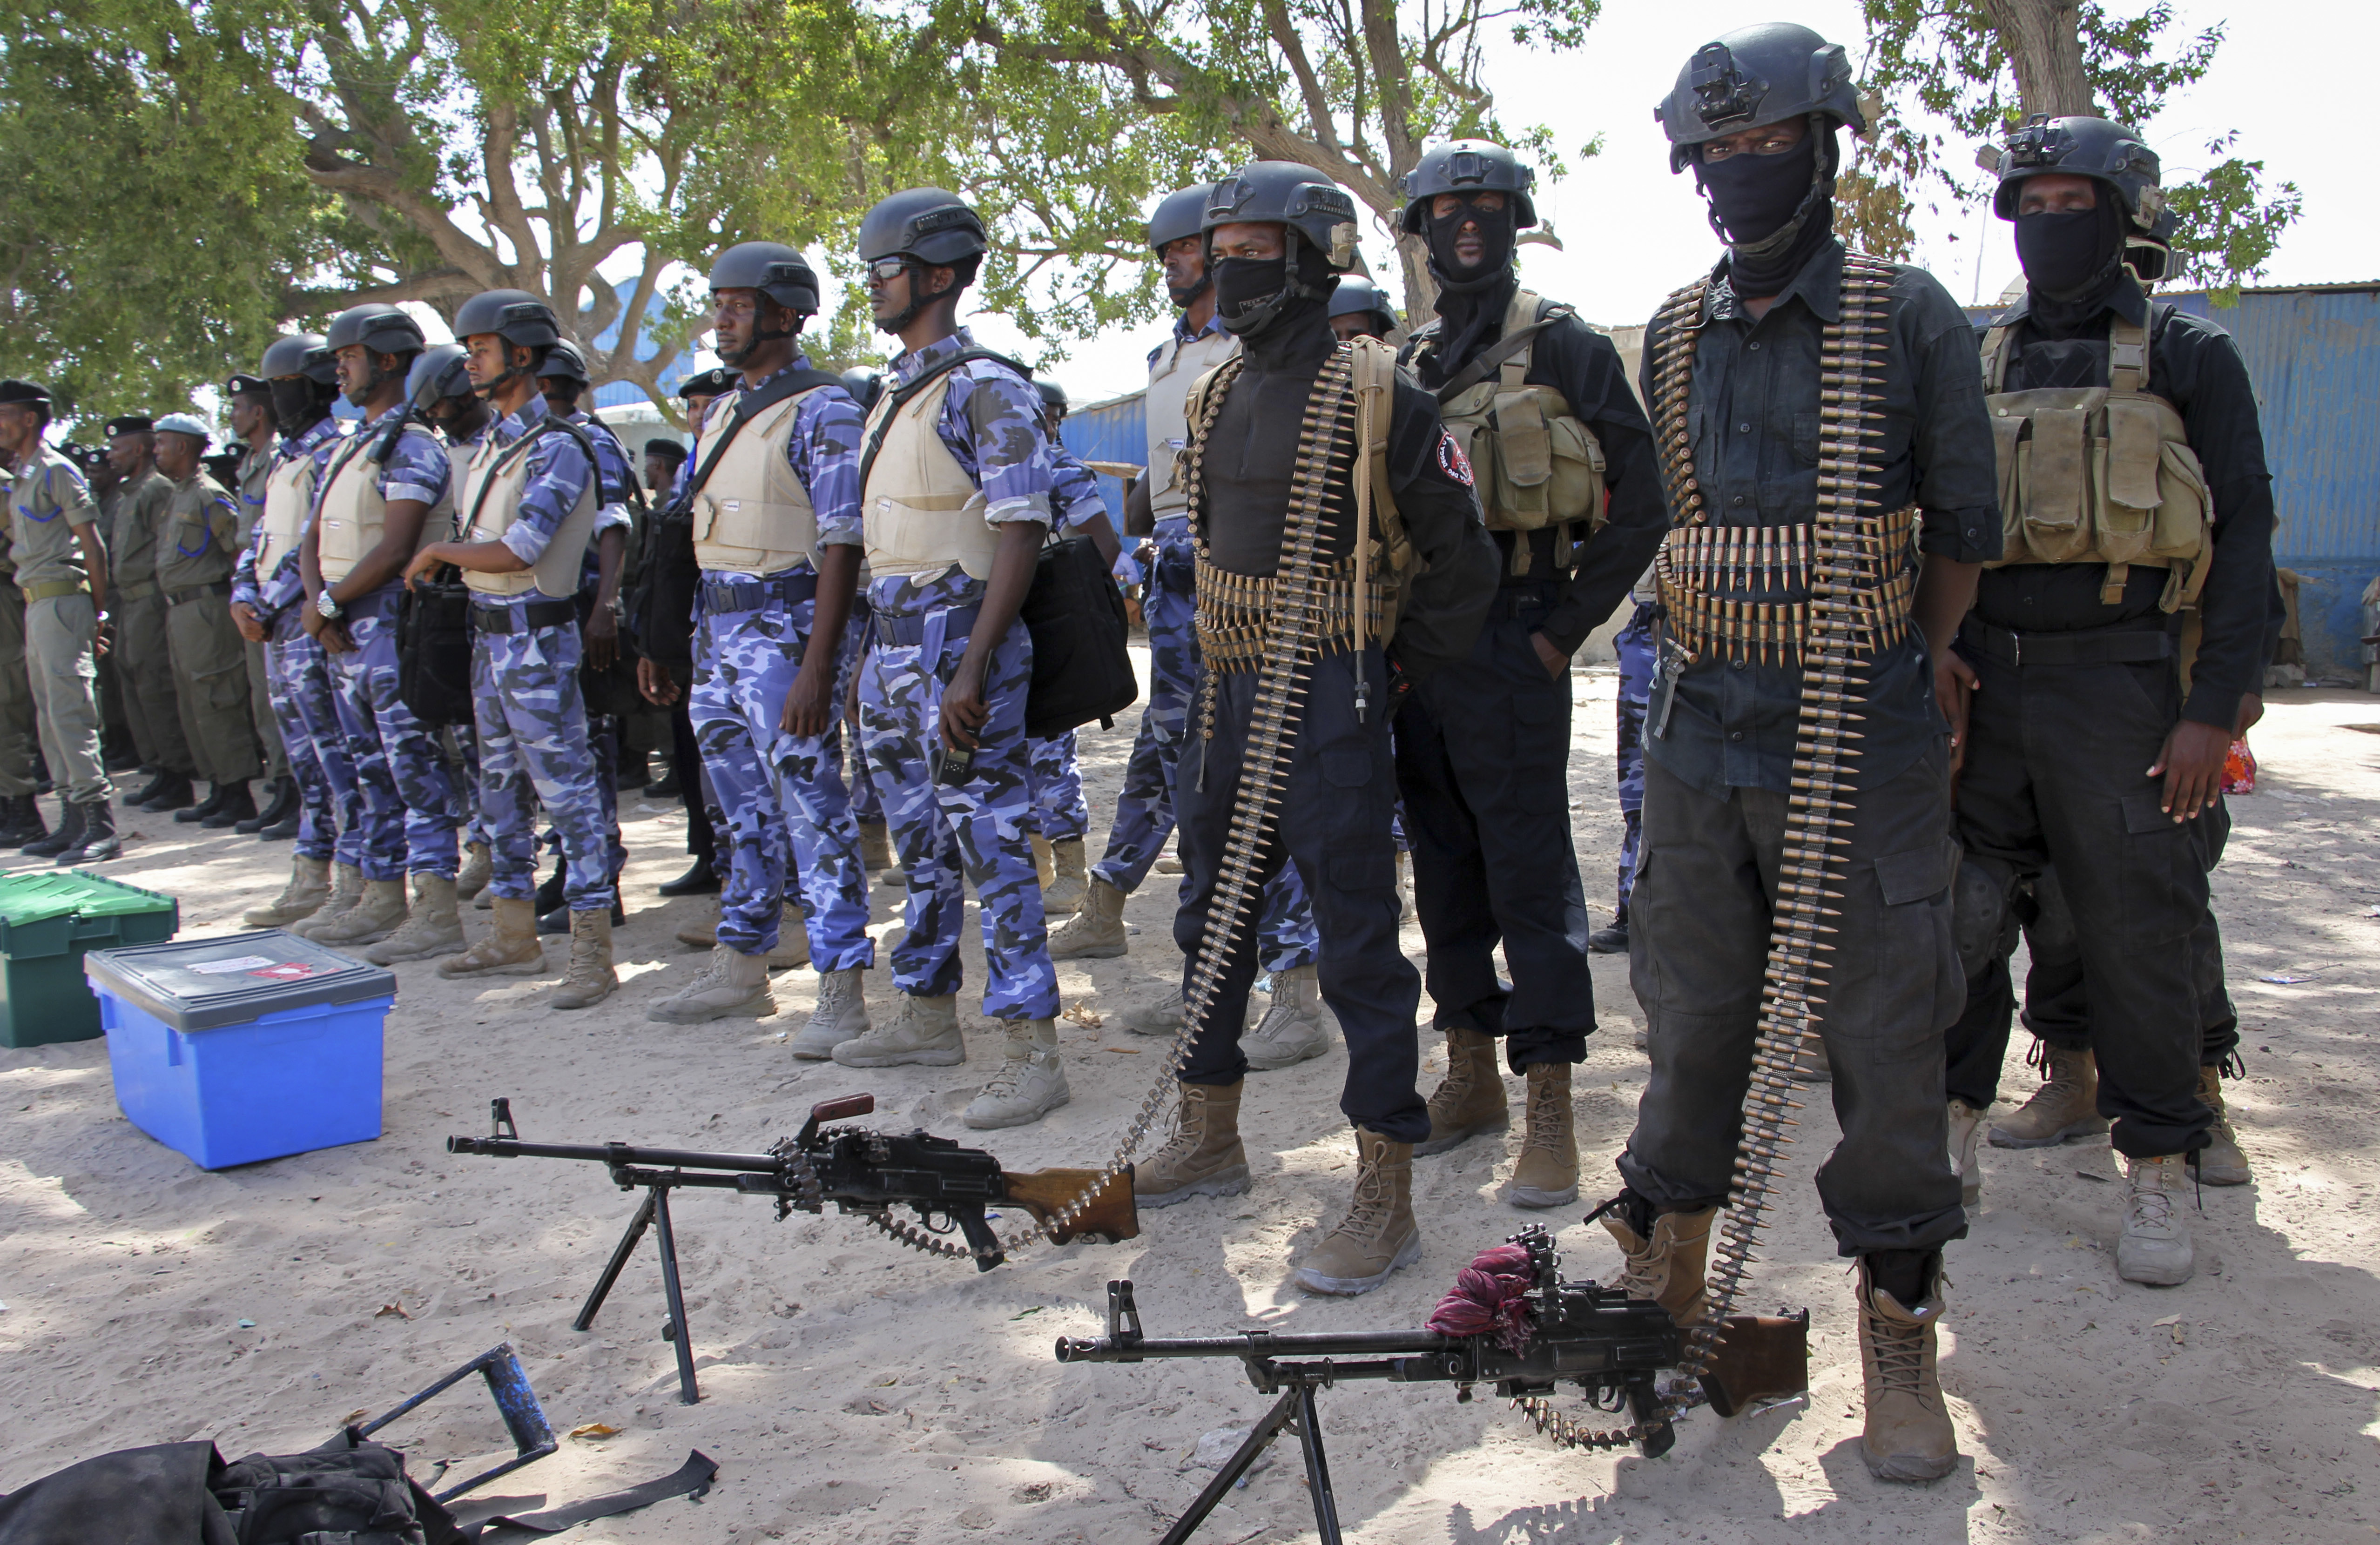 Somali soldiers prepare to secure the capital on the eve of presidential elections in Mogadishu, Feb. 7, 2017.